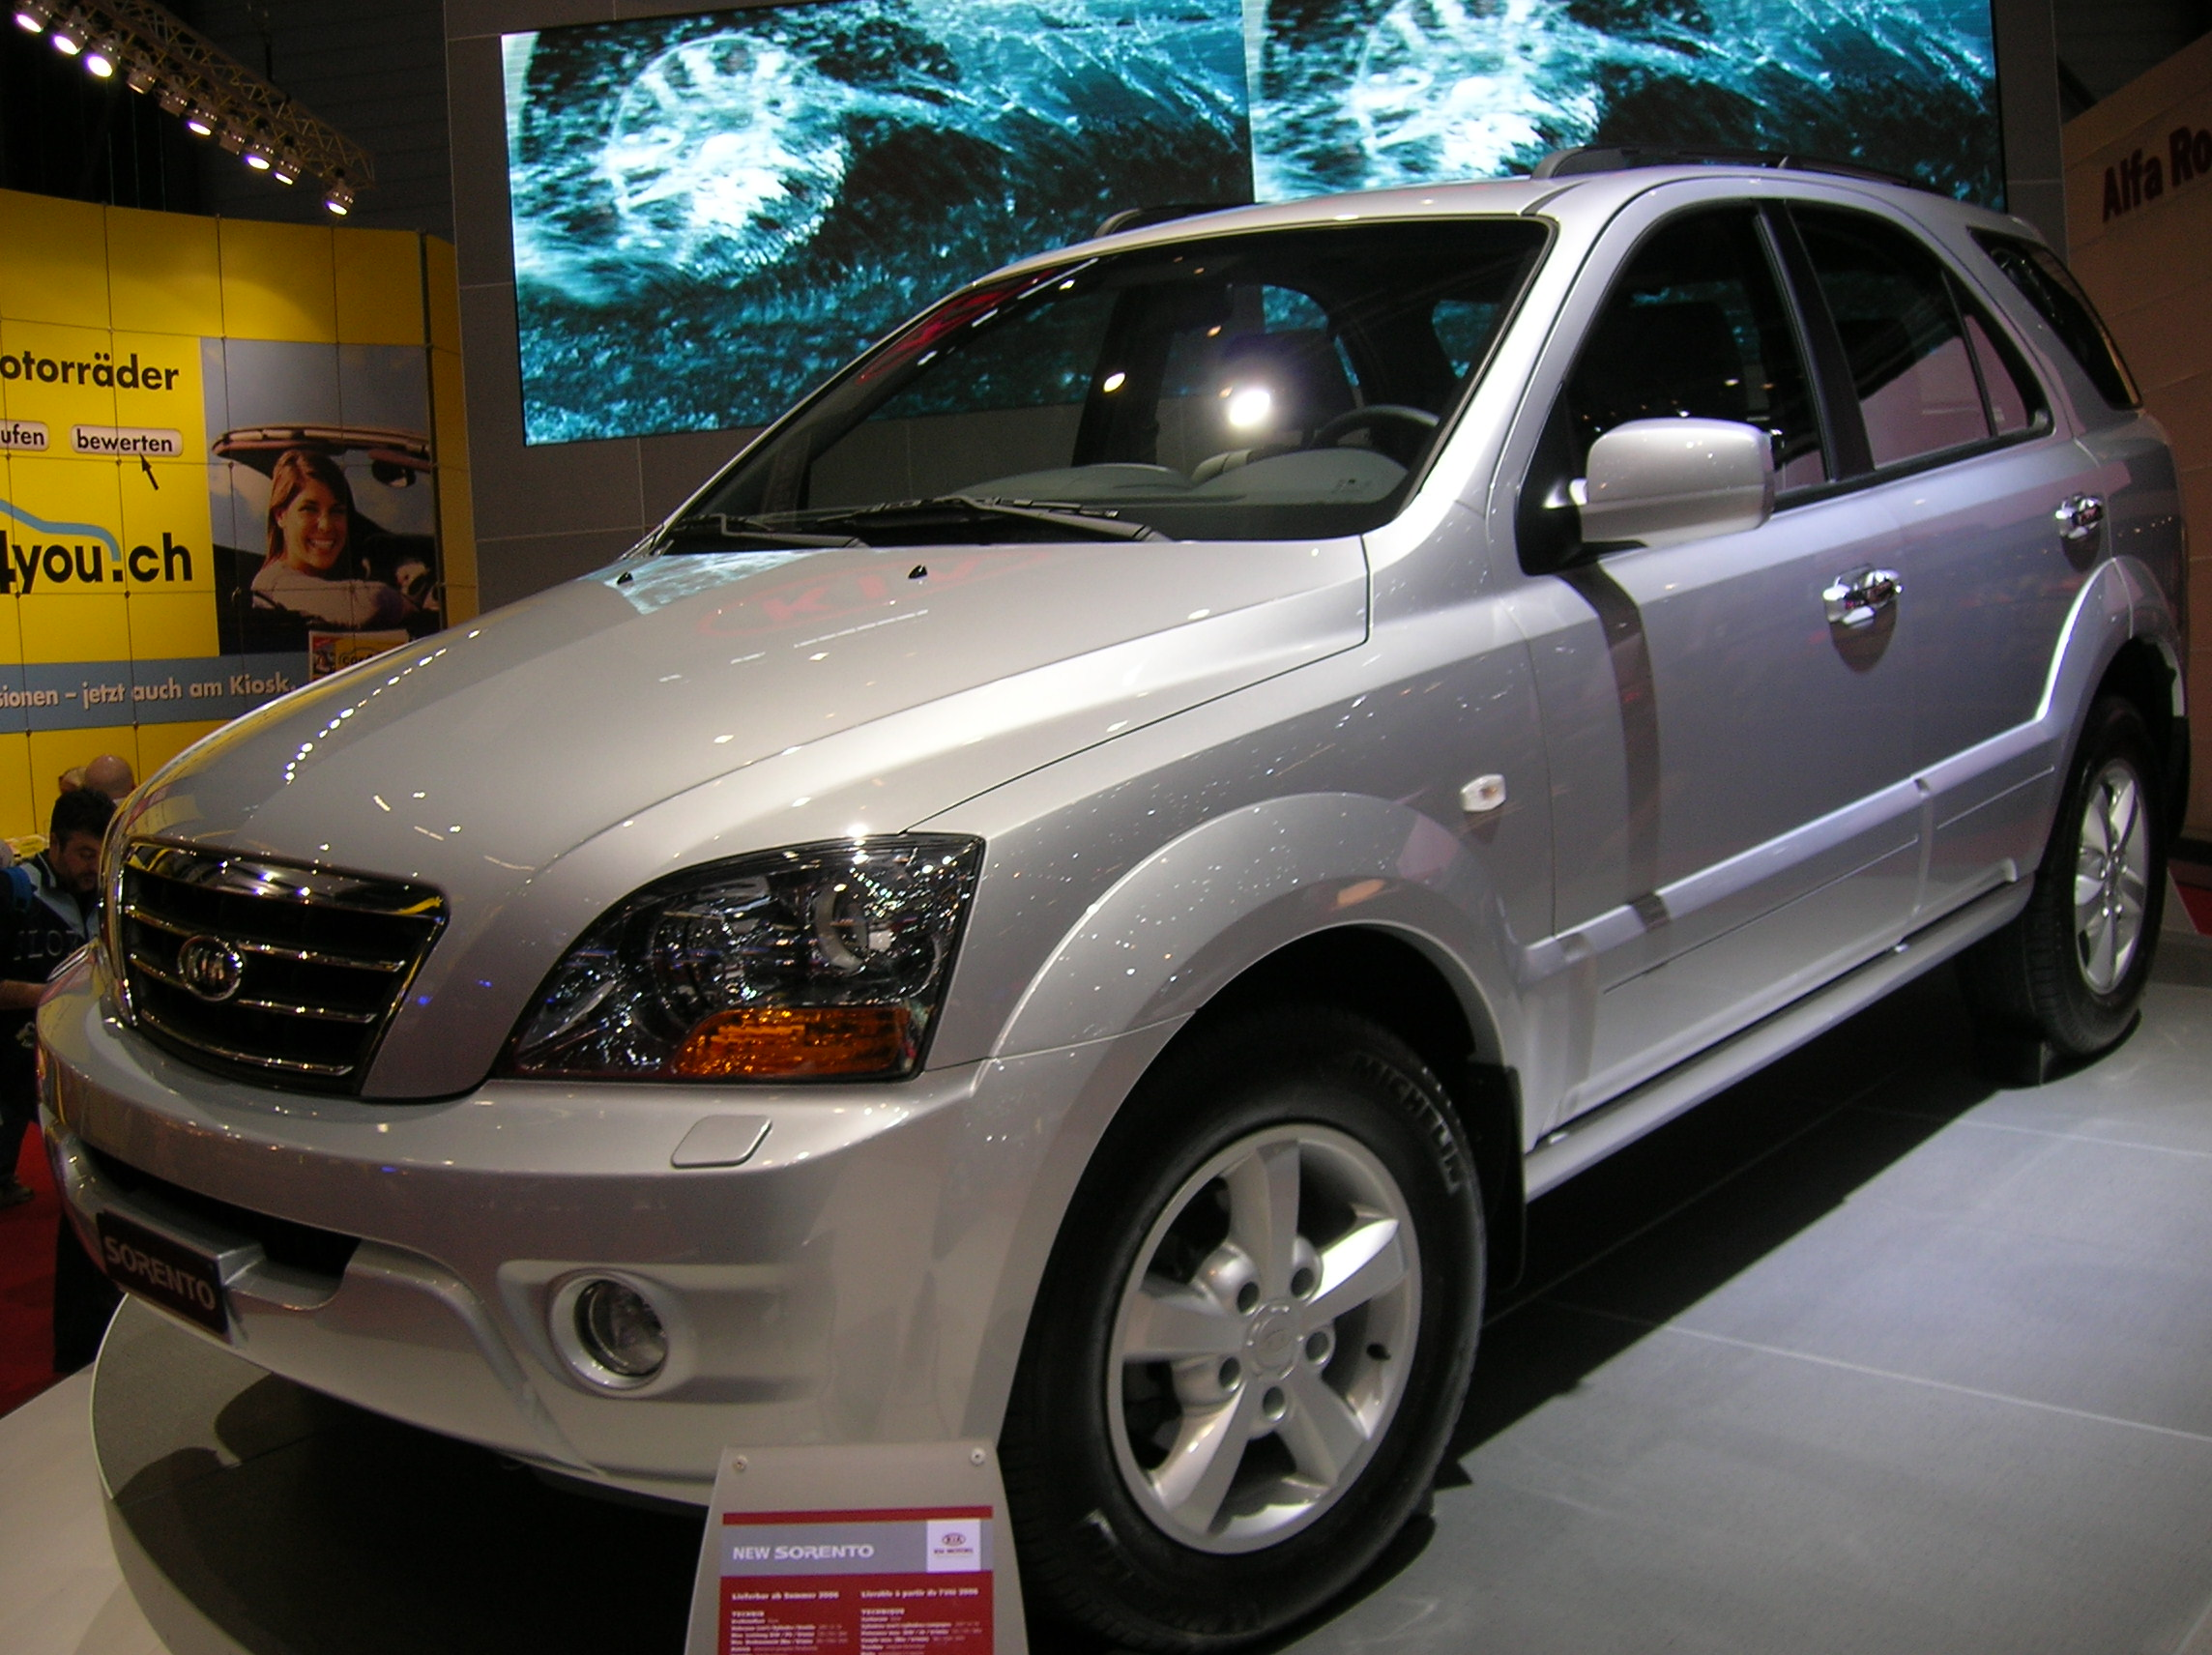 Kia sorento wikipedia autos post for Kia motor finance physical payoff address